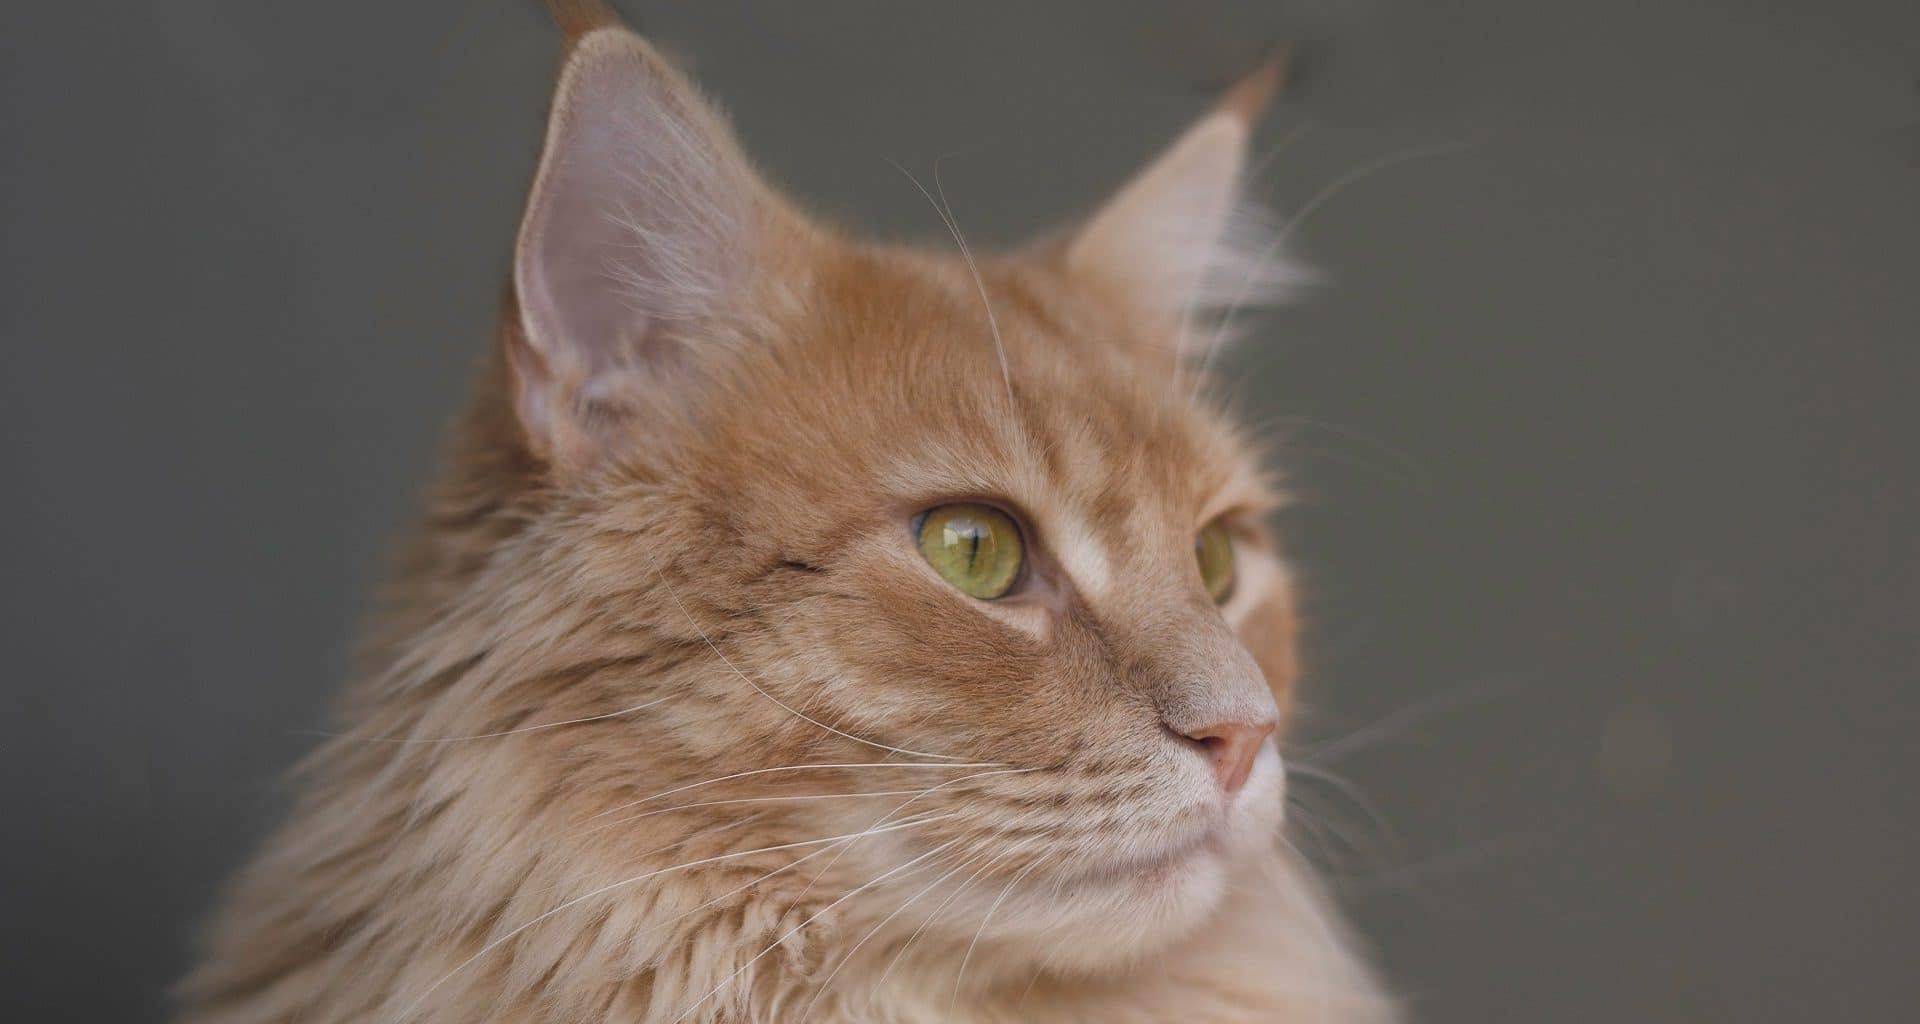 50 of the Most Popular Cat Breeds in the World (Infographic)